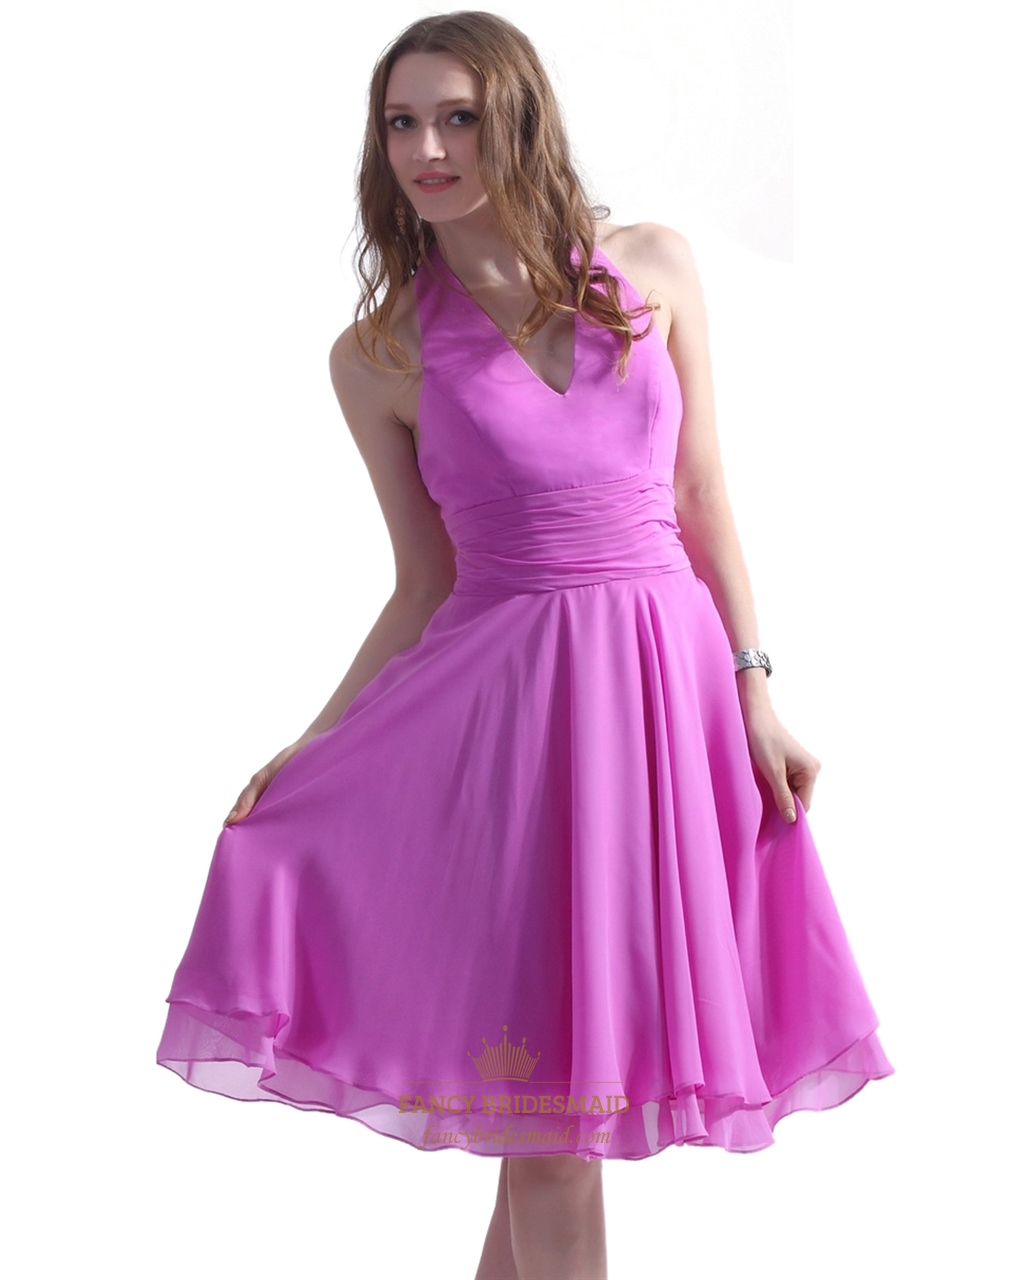 Hot Pink Chiffon Bridesmaid Dresses | Fancy Bridesmaid Dresses